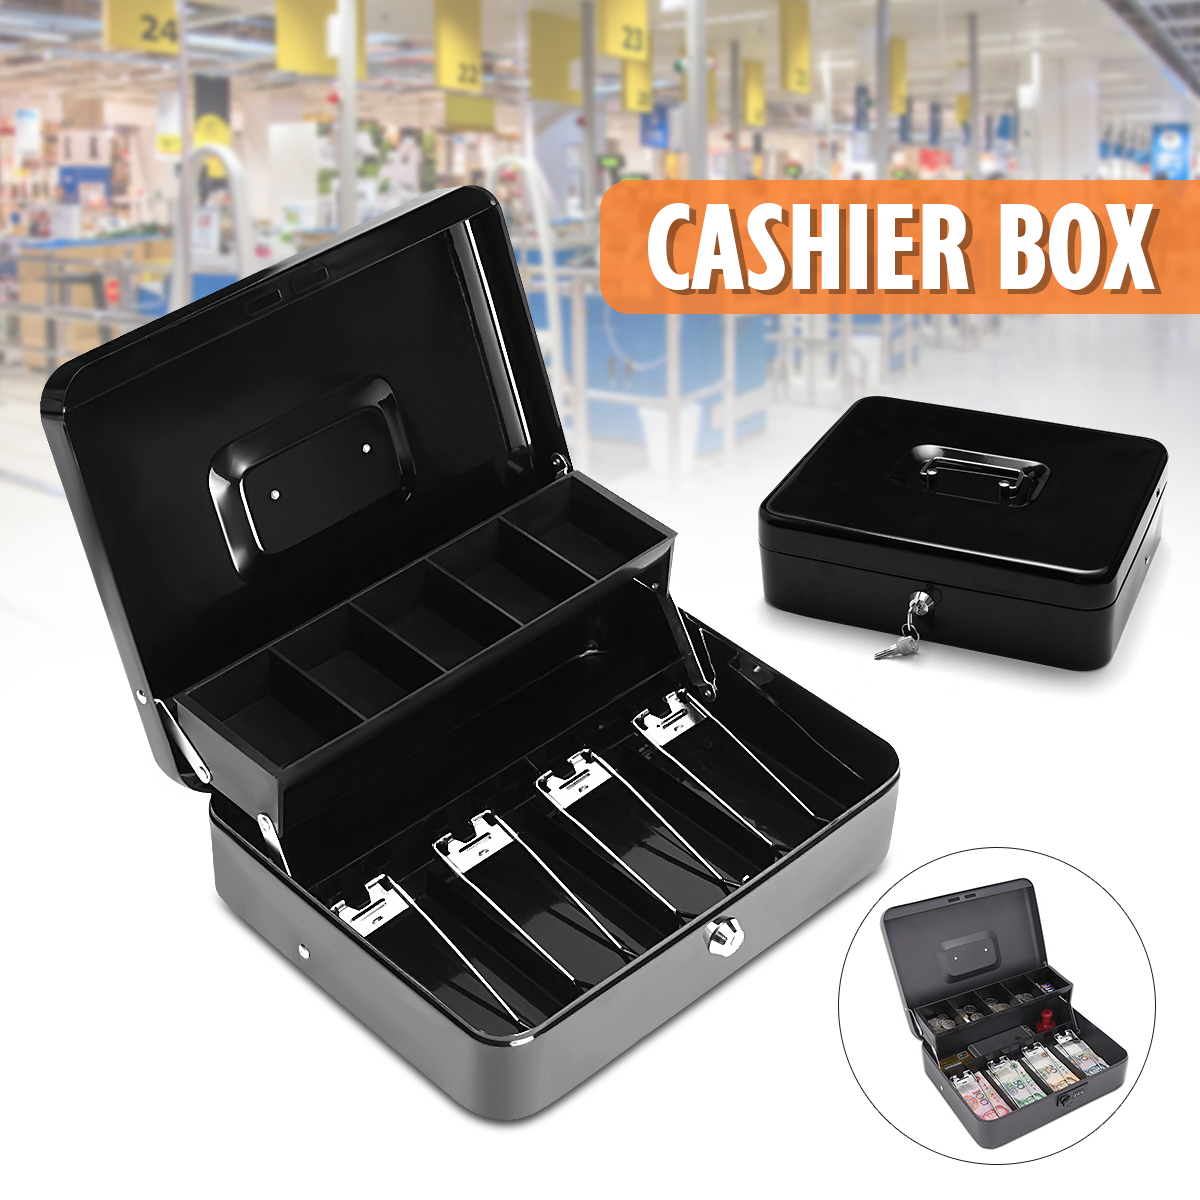 Black Metallic Iron Cash Money Box Drawer With Key Locking Safe Lock Tiered Tray Storage For Security Home Office Container ToolBlack Metallic Iron Cash Money Box Drawer With Key Locking Safe Lock Tiered Tray Storage For Security Home Office Container Tool